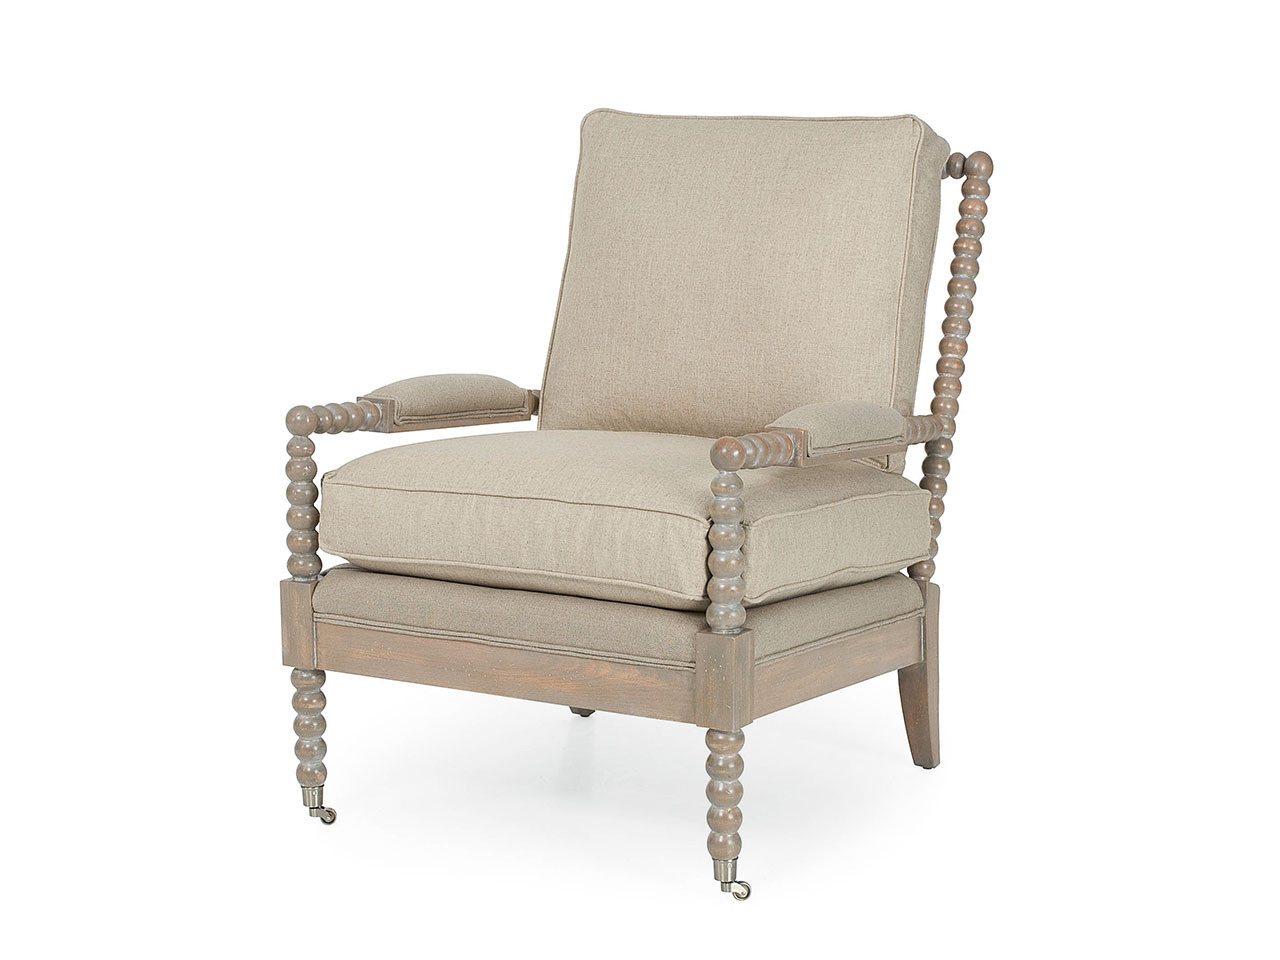 Larren Grey Spool Chair | Upholstered Armchairs, Living Room Chairs ...